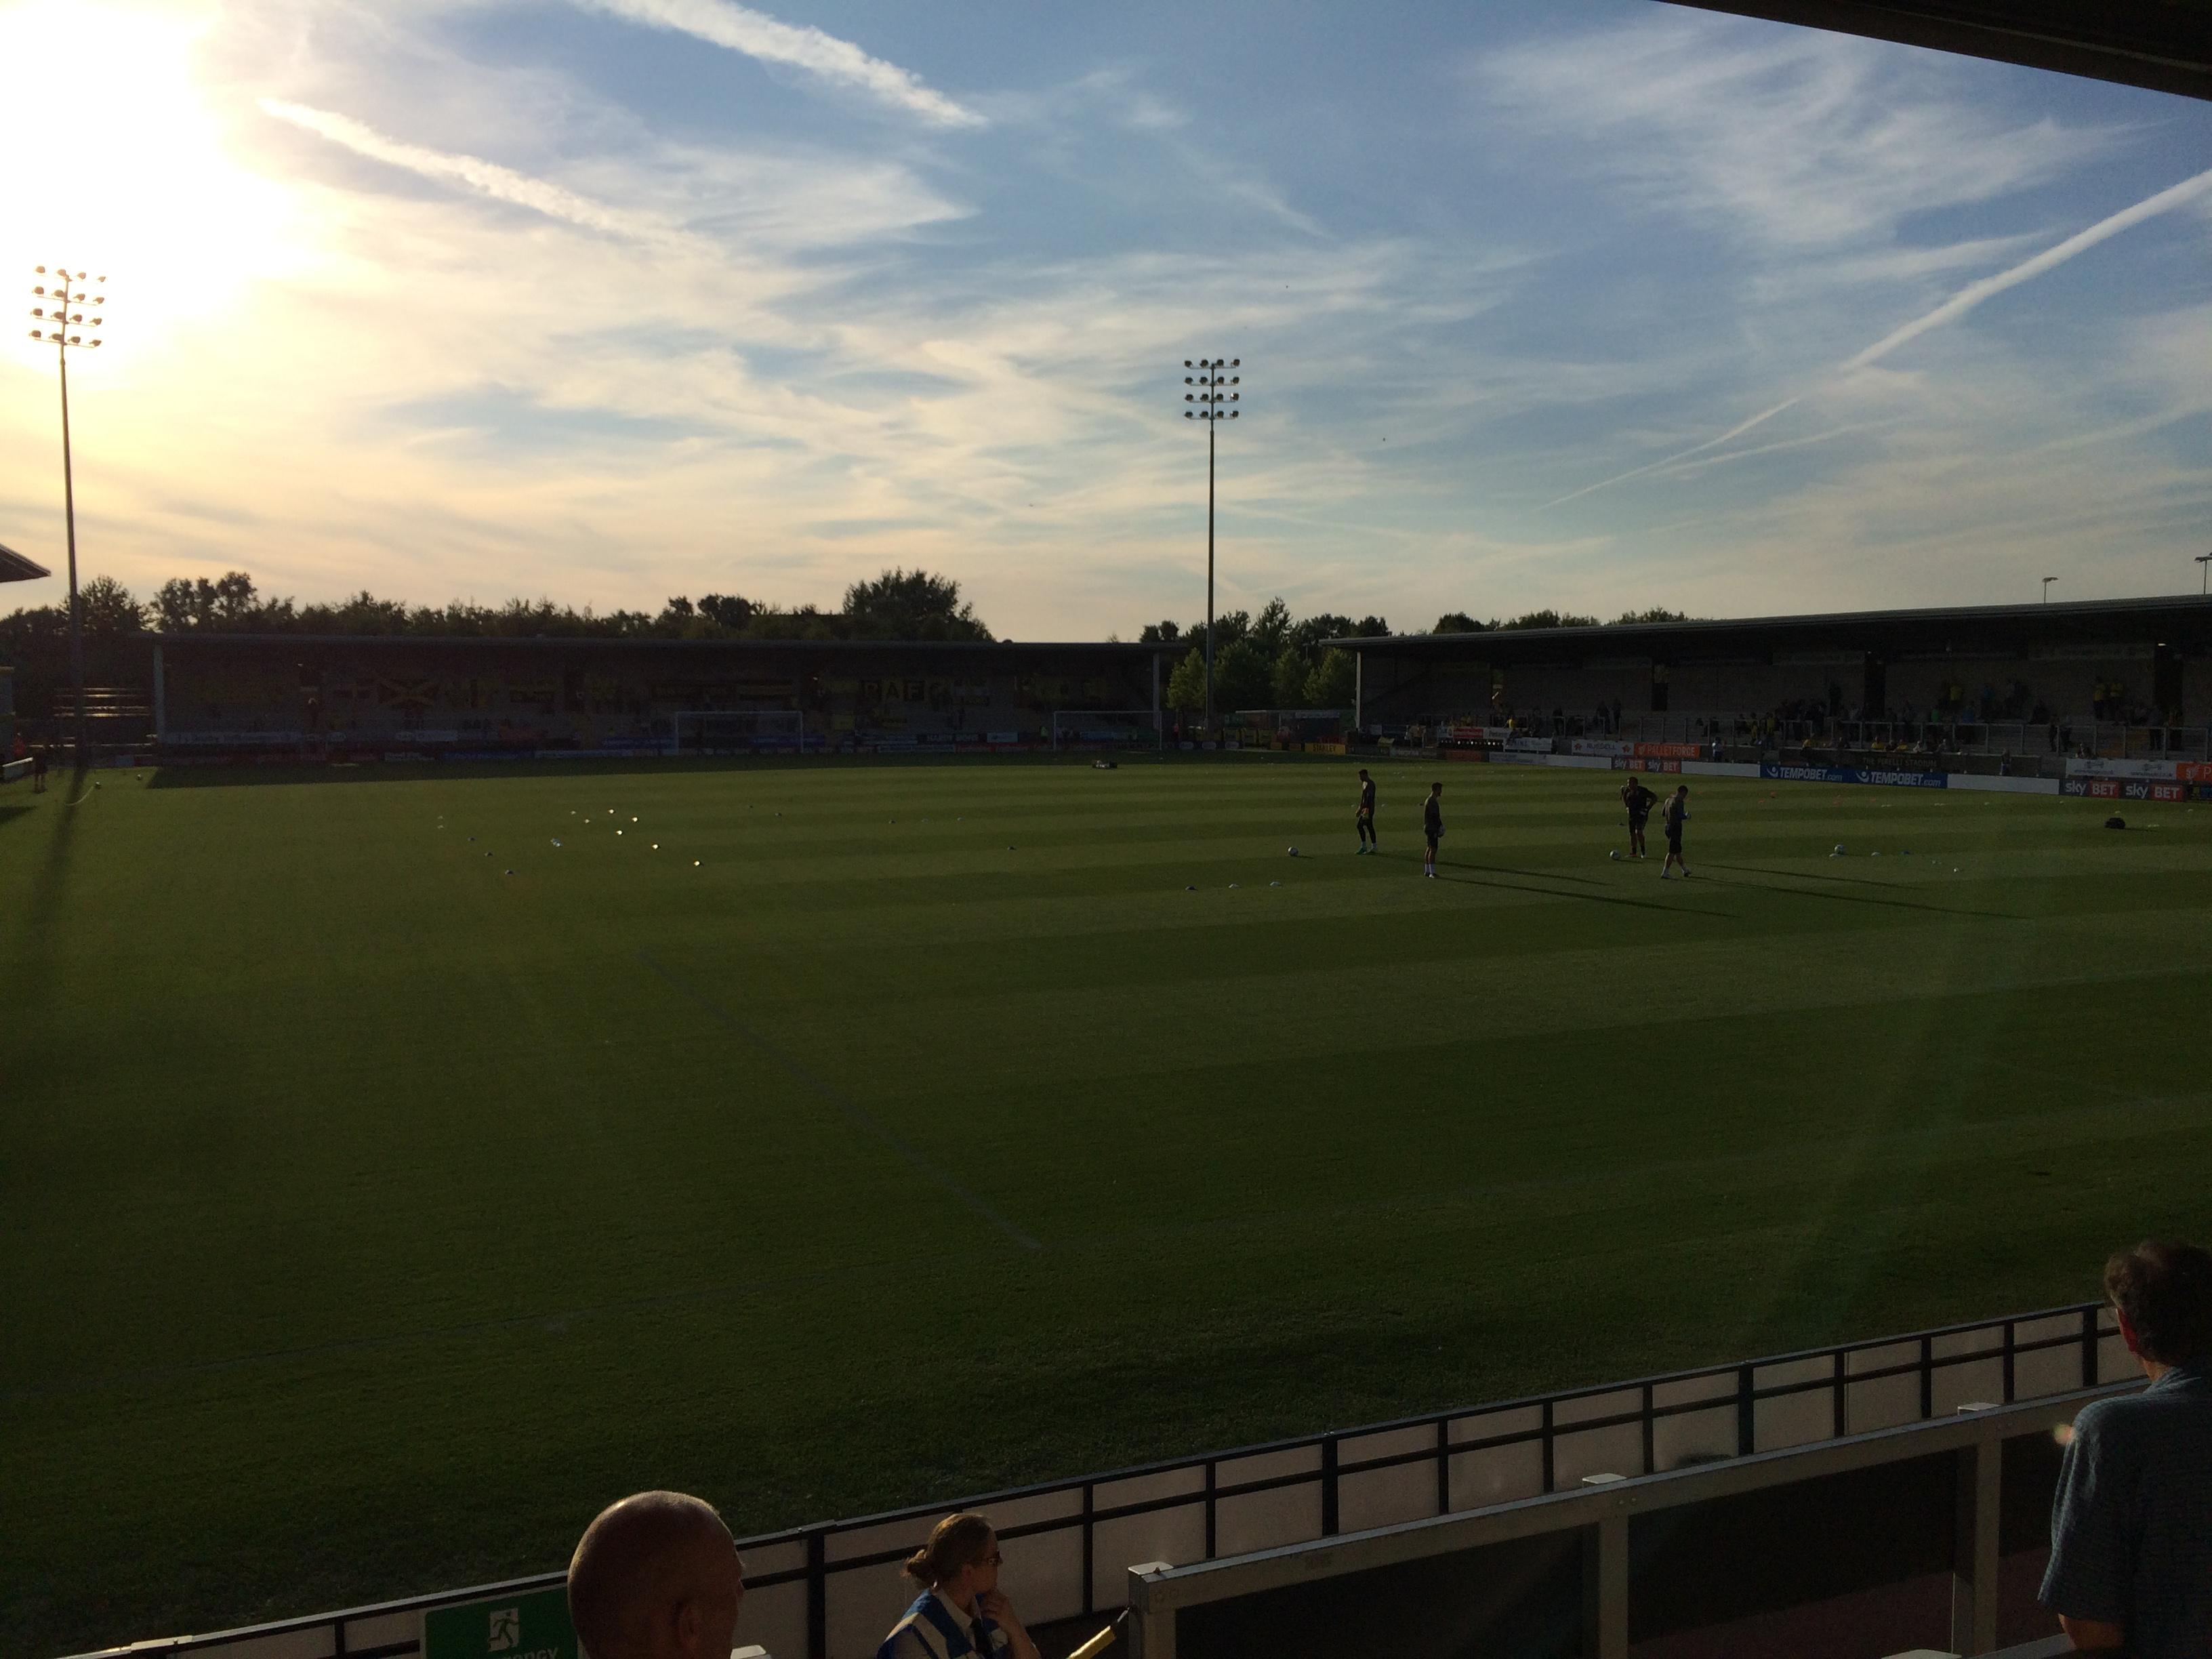 Pirelli Stadium Section Away stand Row N/a Seat Left of goal